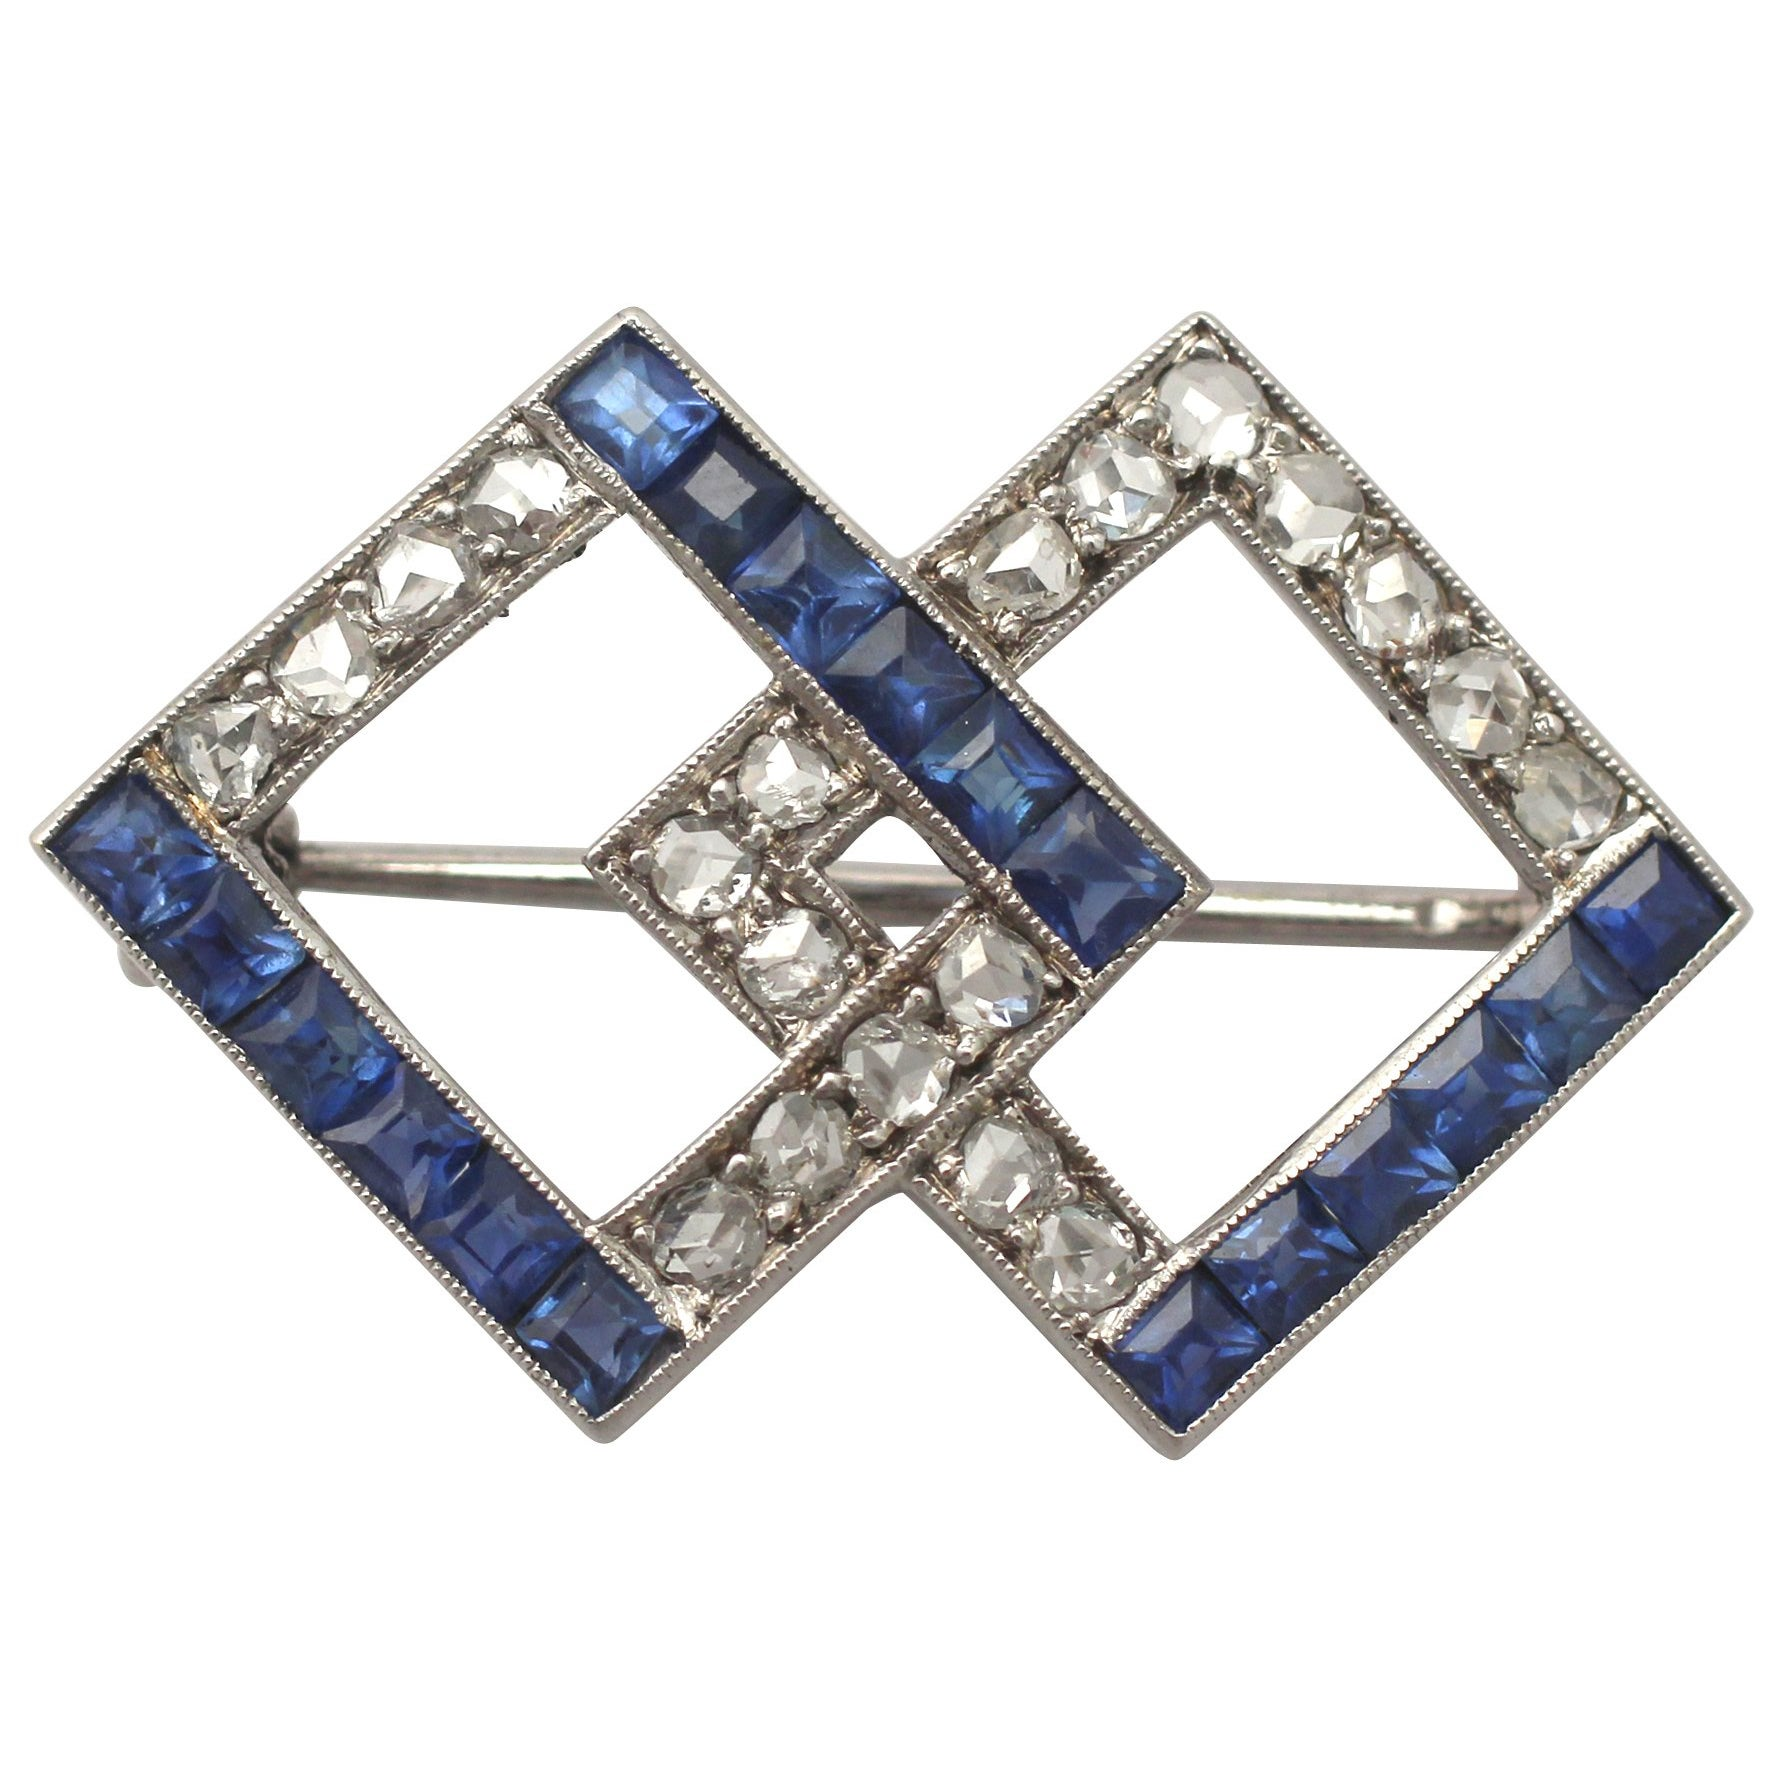 screen shot at sapphire royal pm brooch the connaught watcher